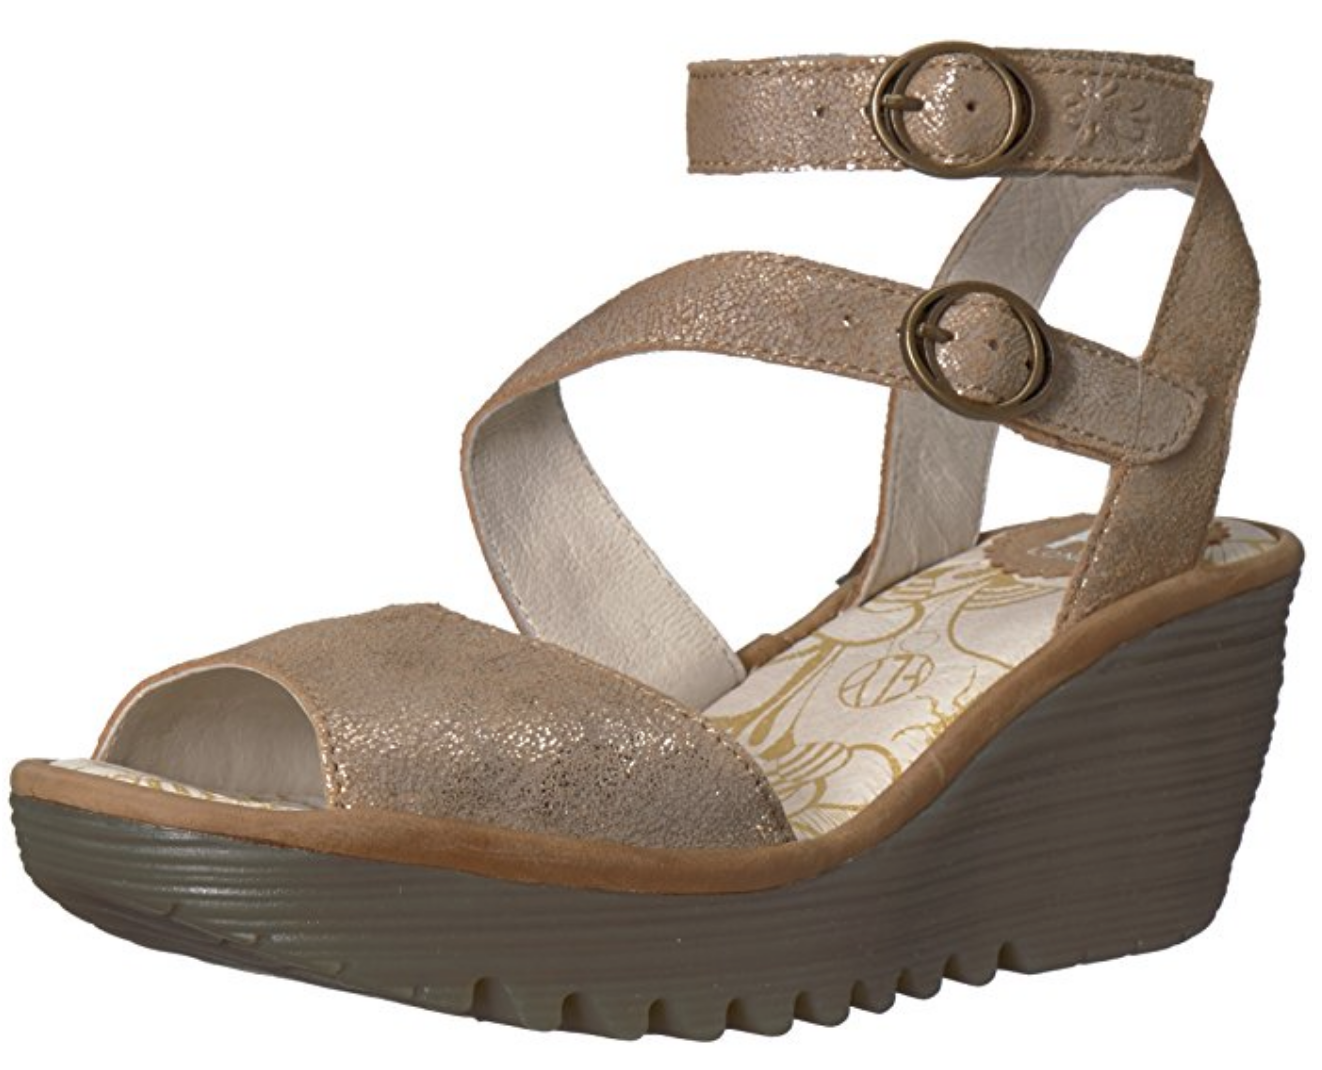 Fly London Yisk LUNA gold Camel Leather Ankle Strap Wedge Sandals 9-9.5 EU 40